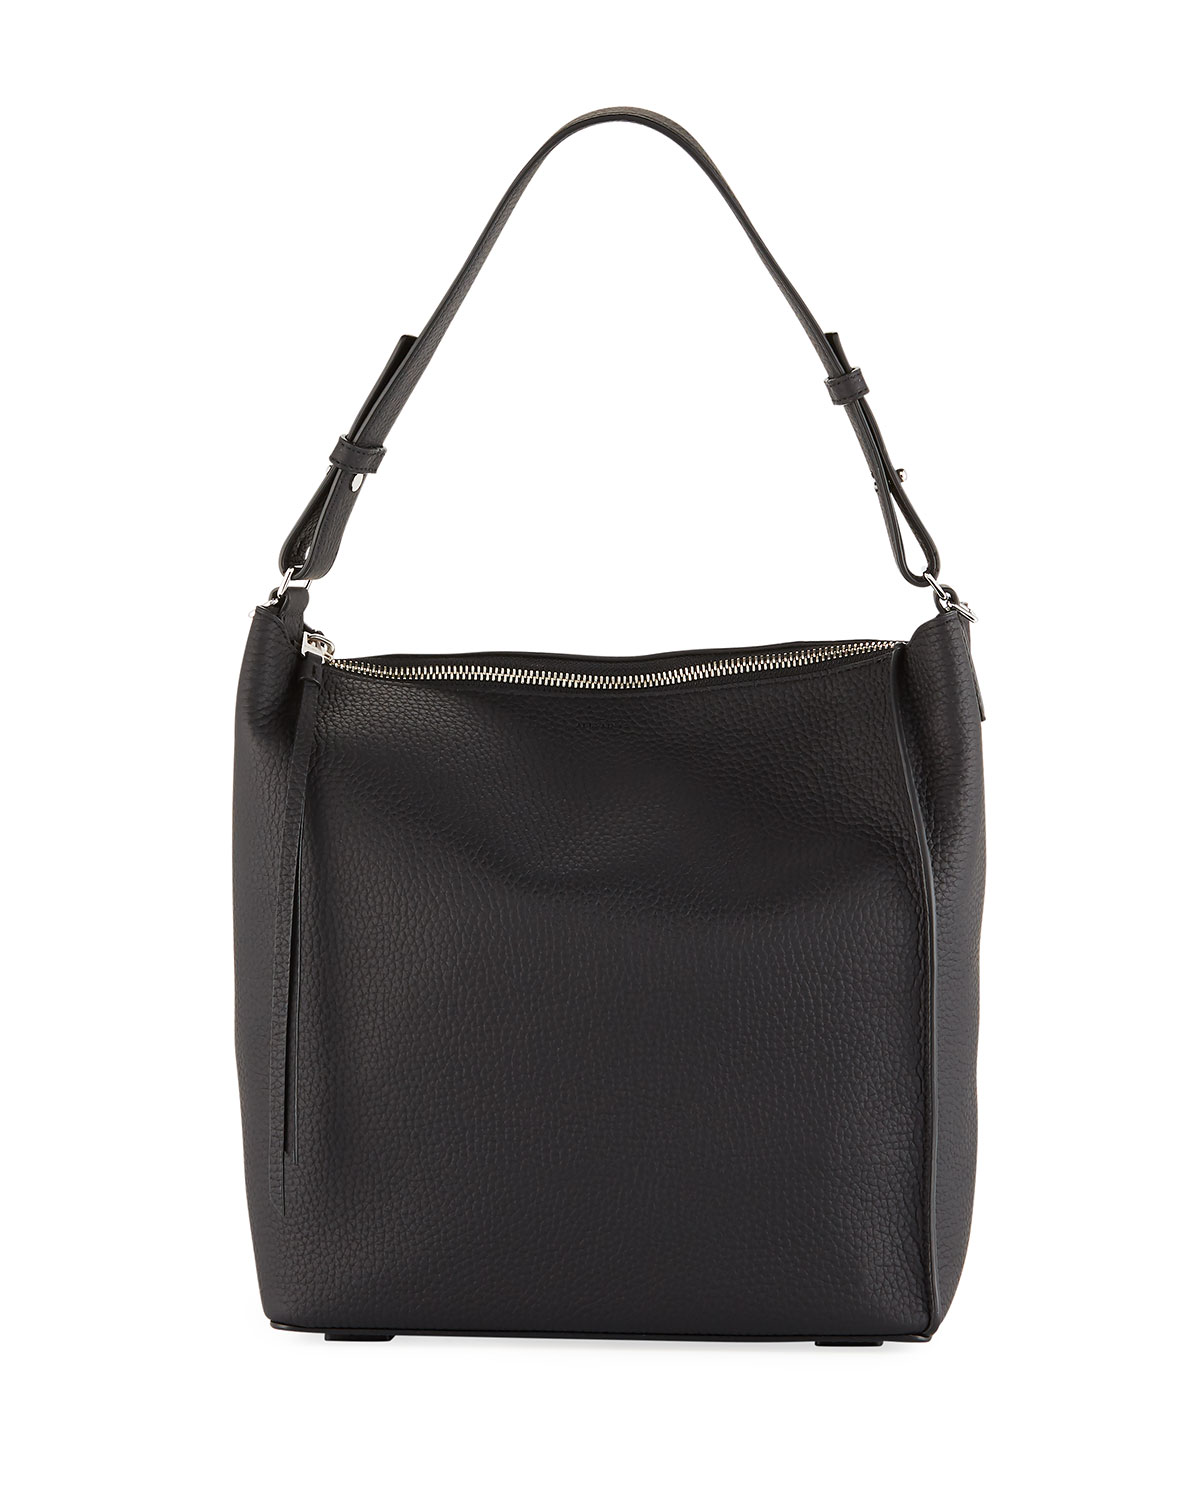 Allsaintskita Leather Crossbody Bag